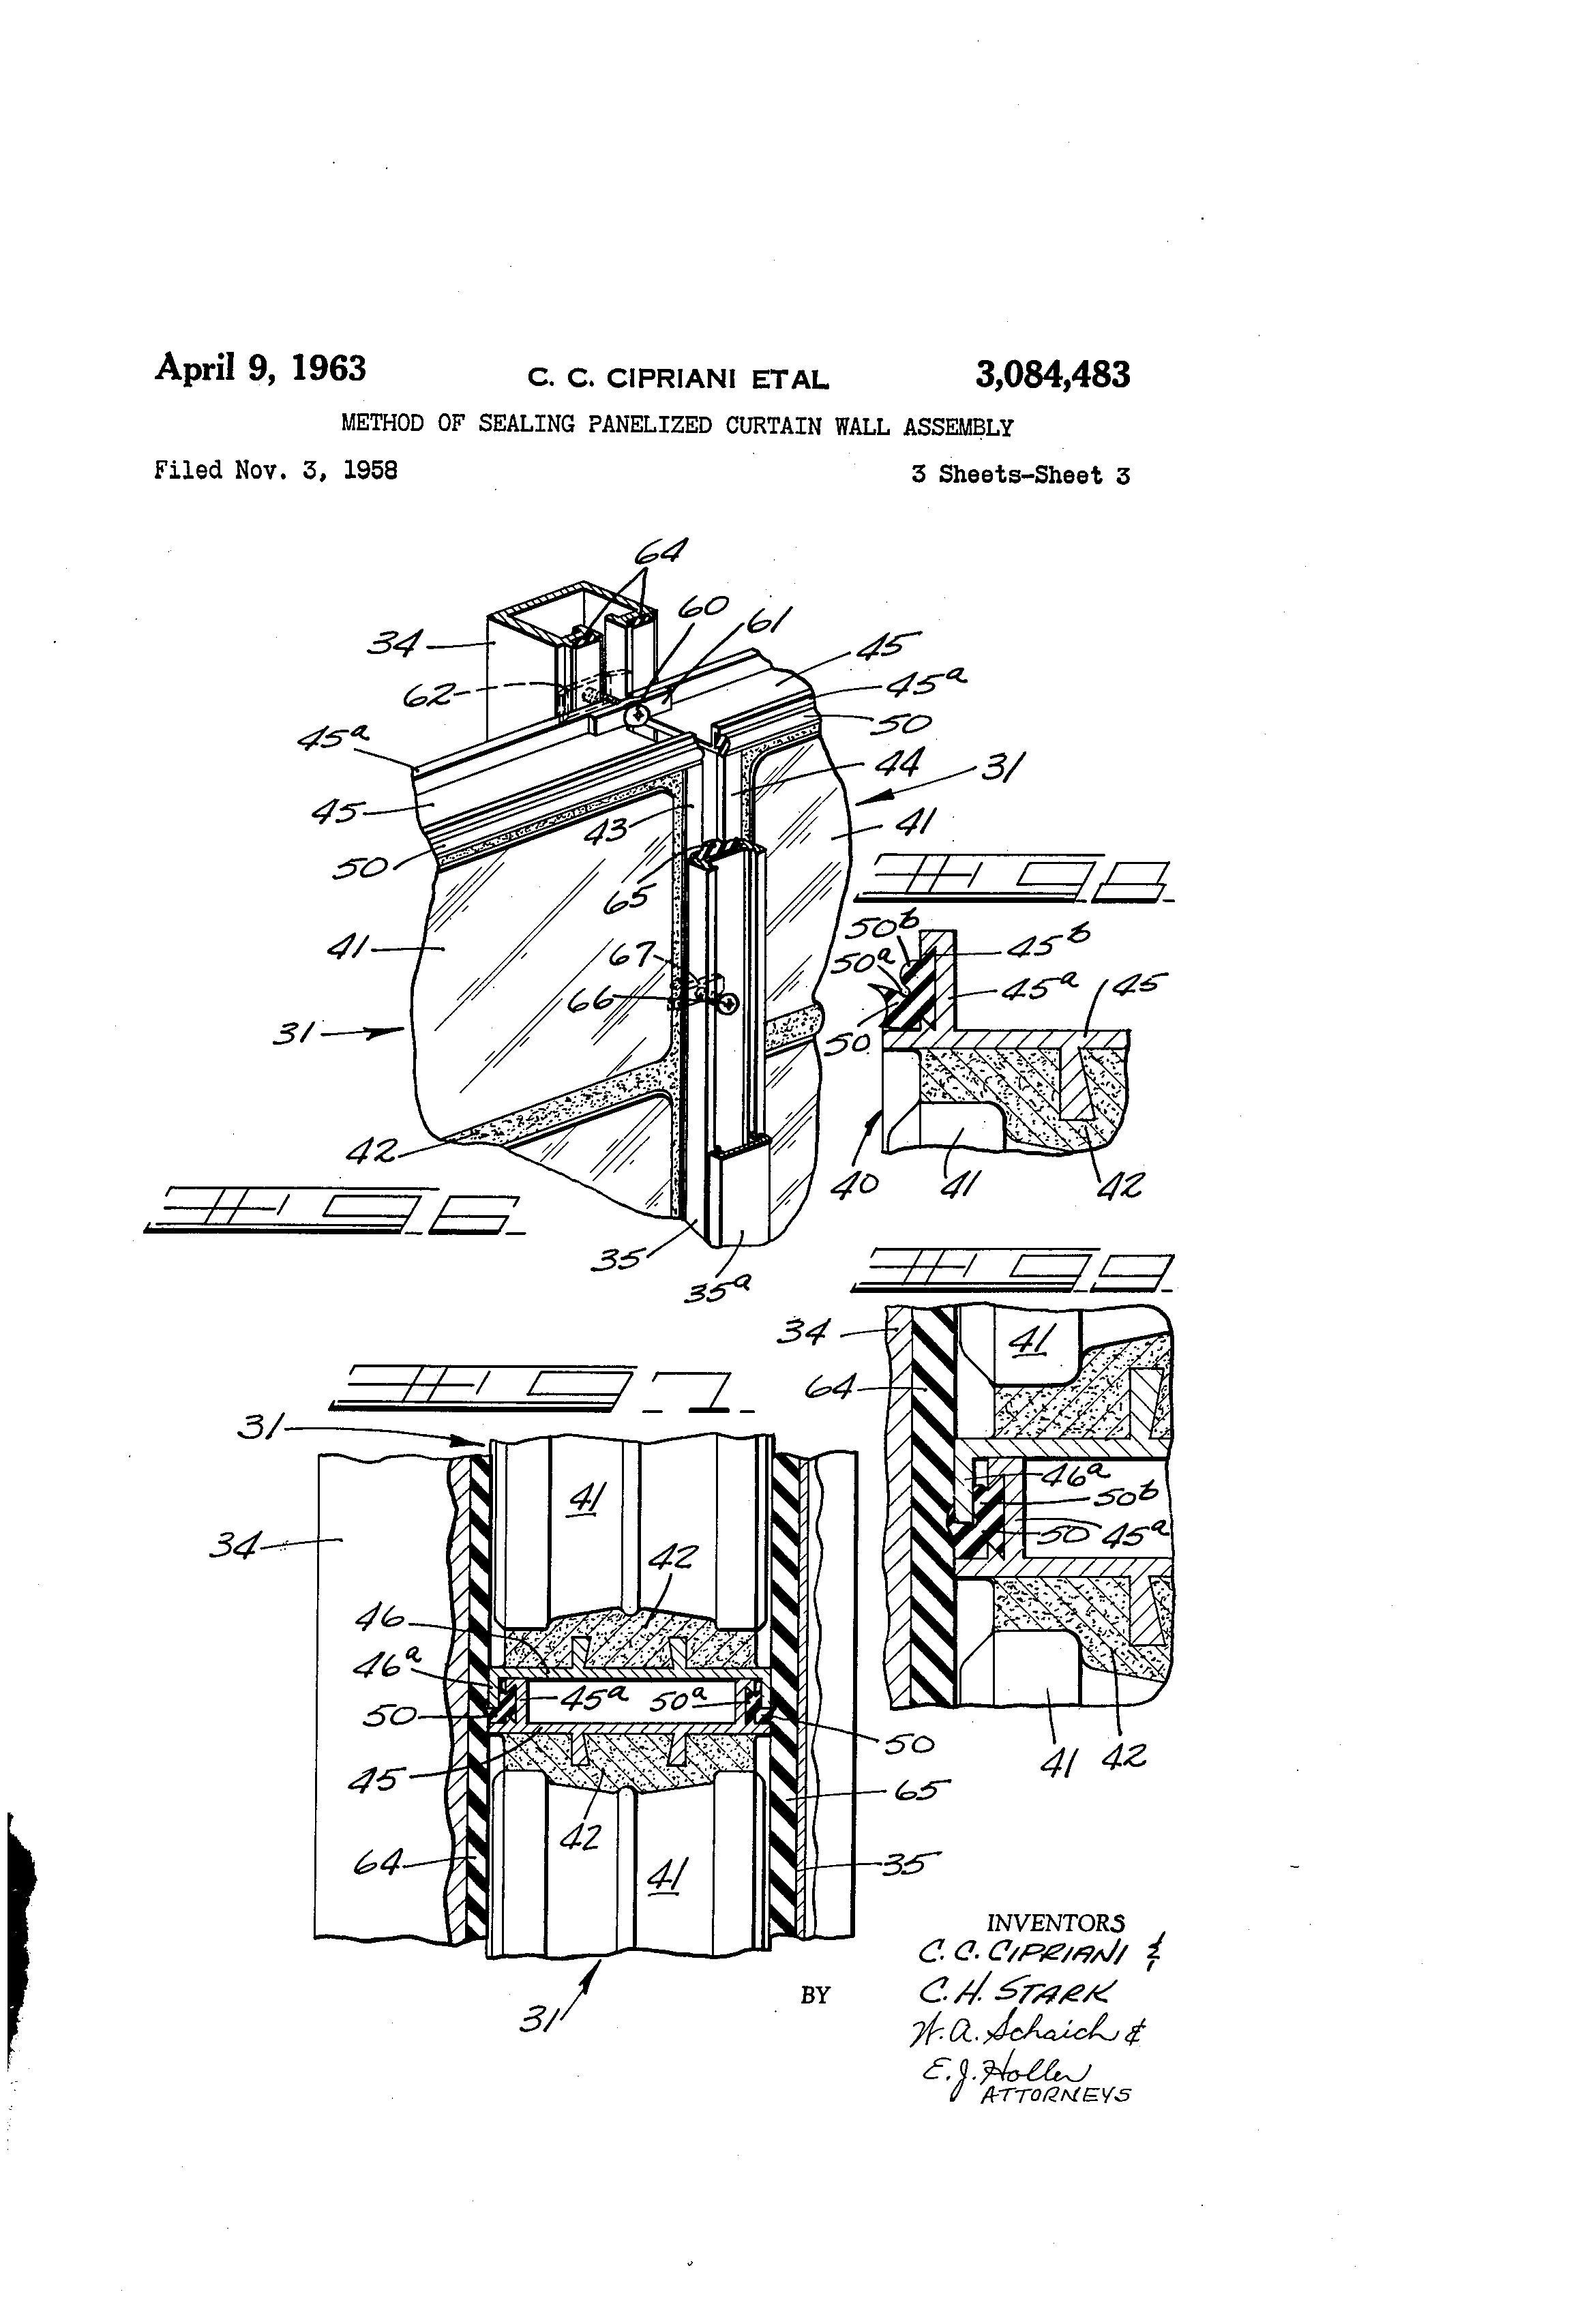 Curtain Wall Assembly : Patent us method of sealing panelized curtain